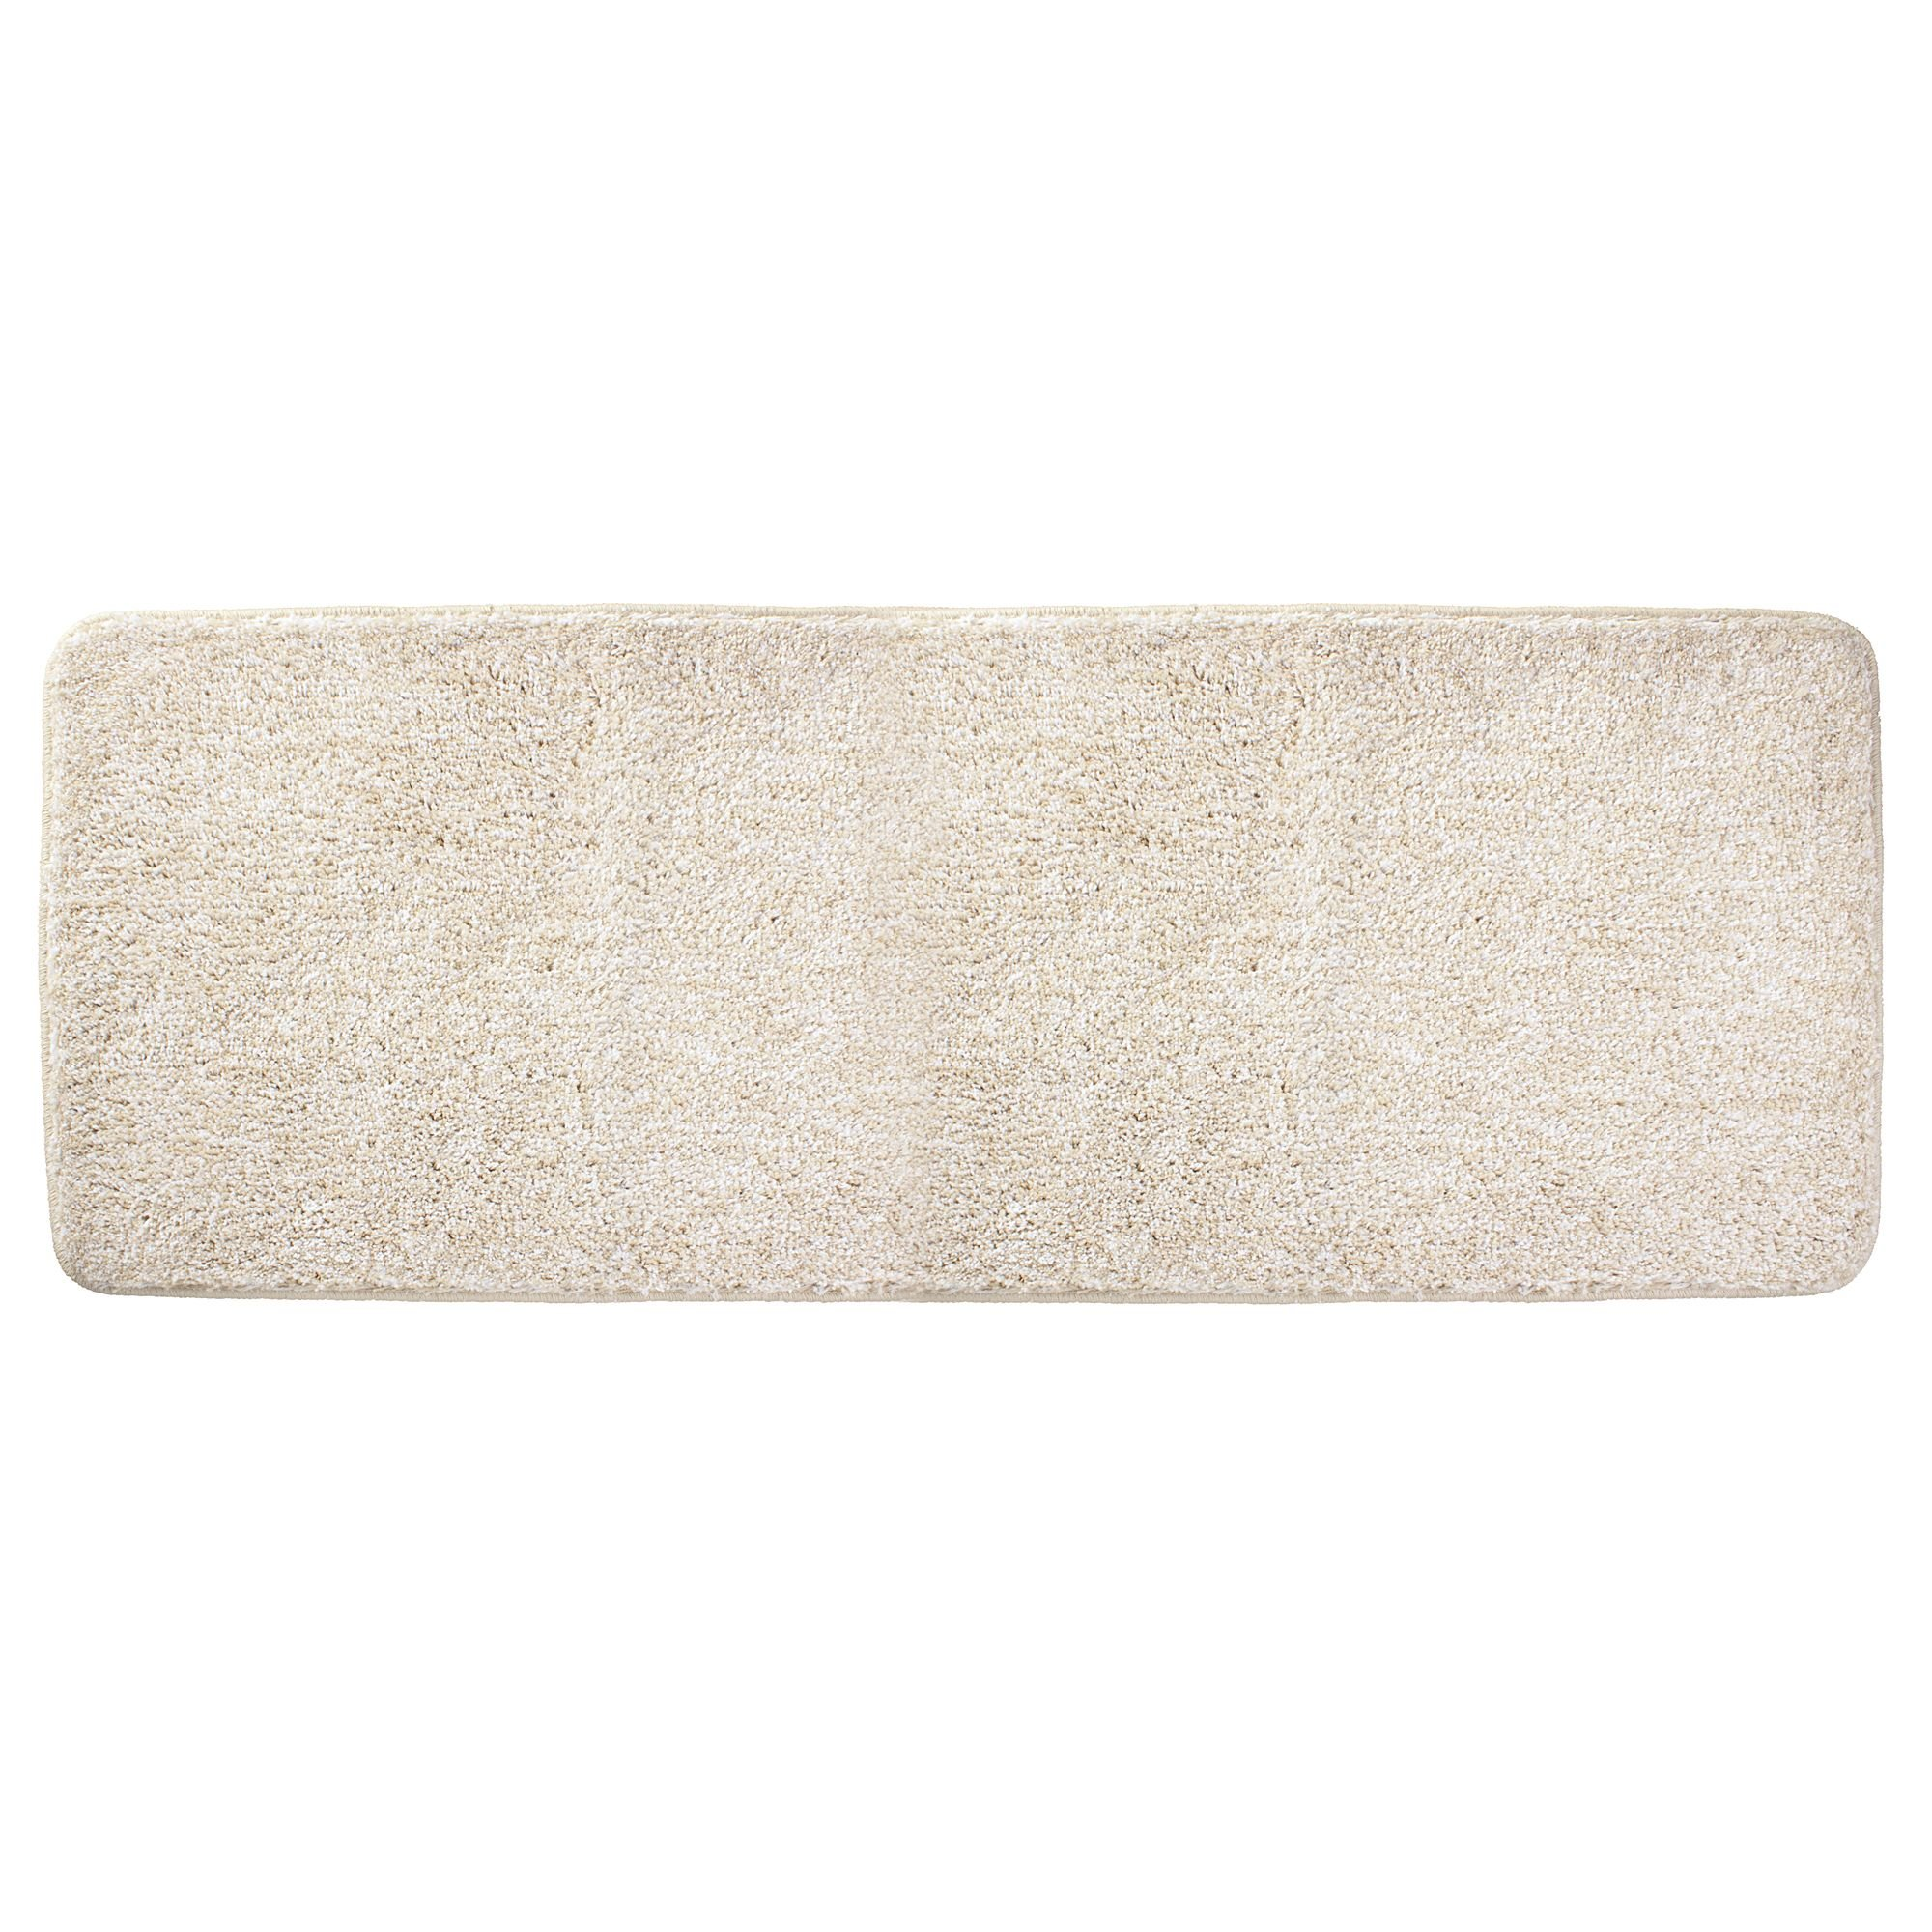 mDesign Soft Microfiber Polyester Non-Slip Extra-Long Spa Mat/Runner, Plush Water Absorbent Accent Rug for Bathroom Vanity, Bathtub/Shower, Machine Washable - 60'' x 21'' - Heathered Linen/Light Tan